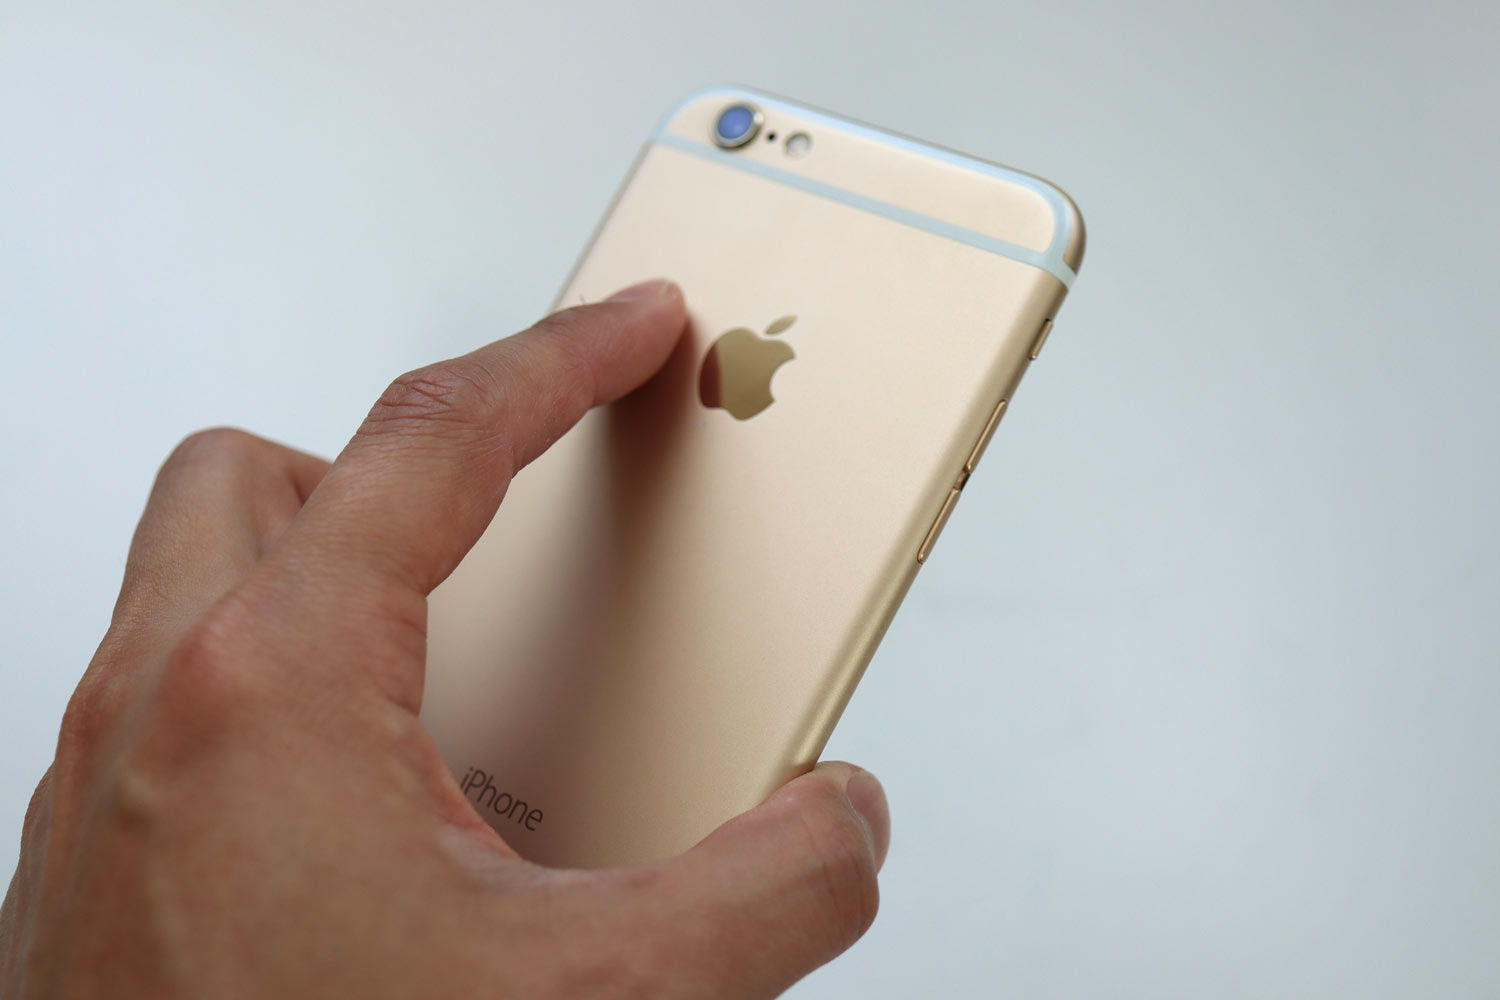 iPhone 6s 手で持った印象